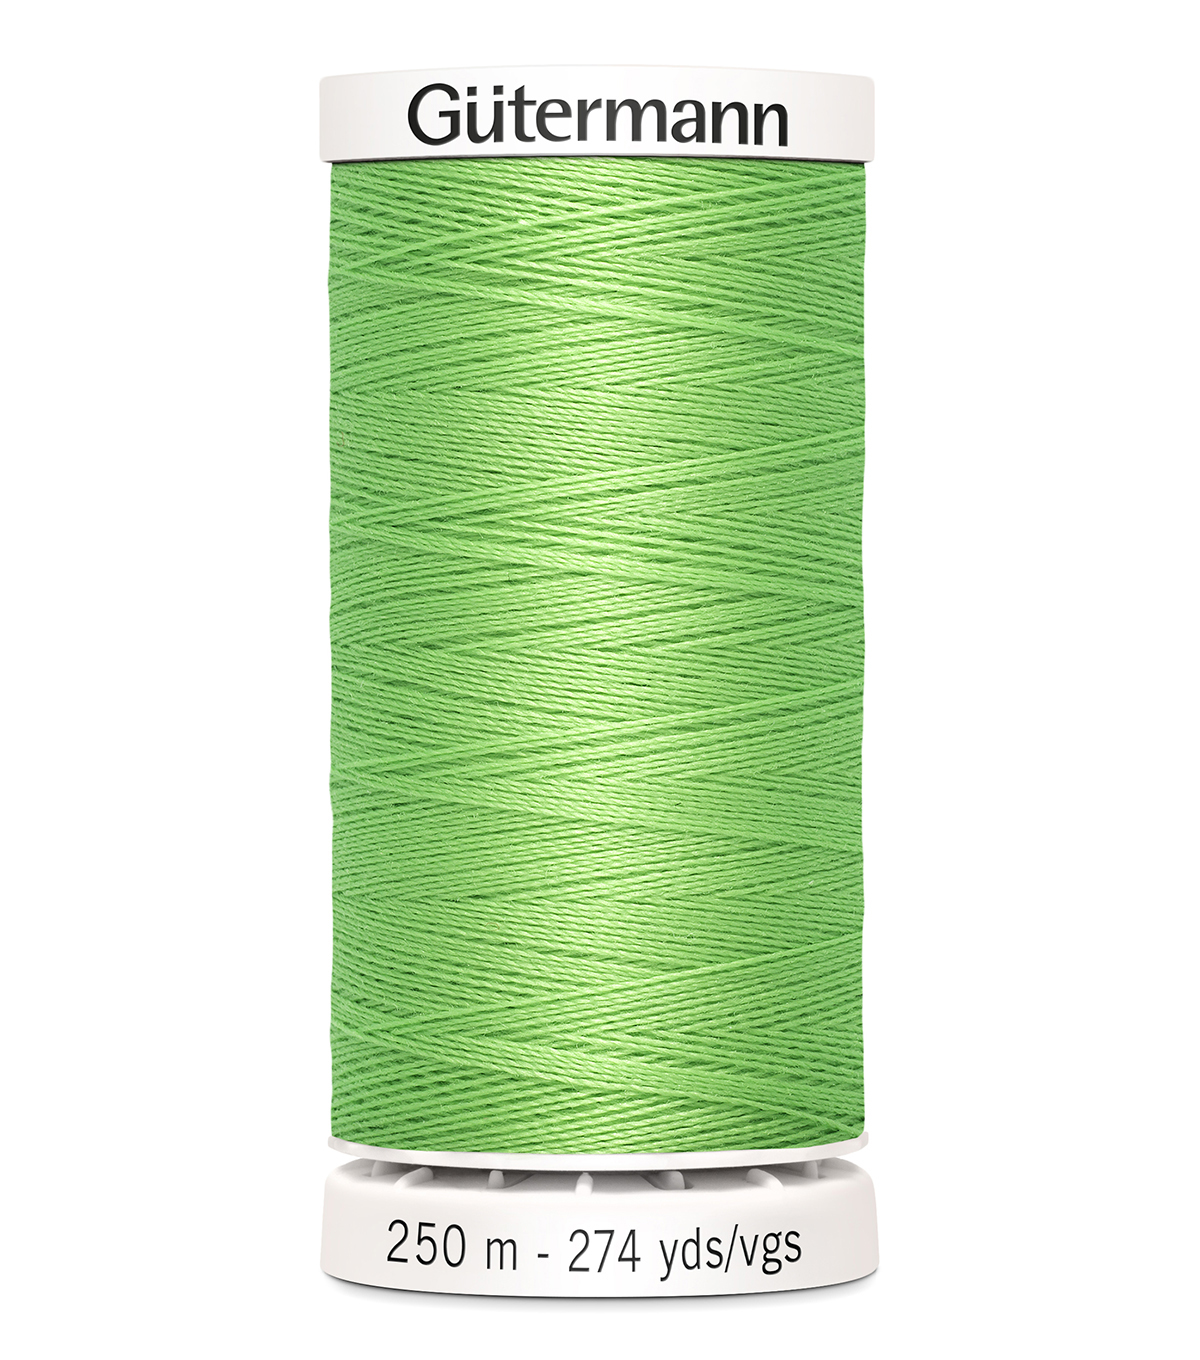 Gutermann Sew-All Thread 273Yds-(600 & 700 series) Cool Tones , New Leaf #710